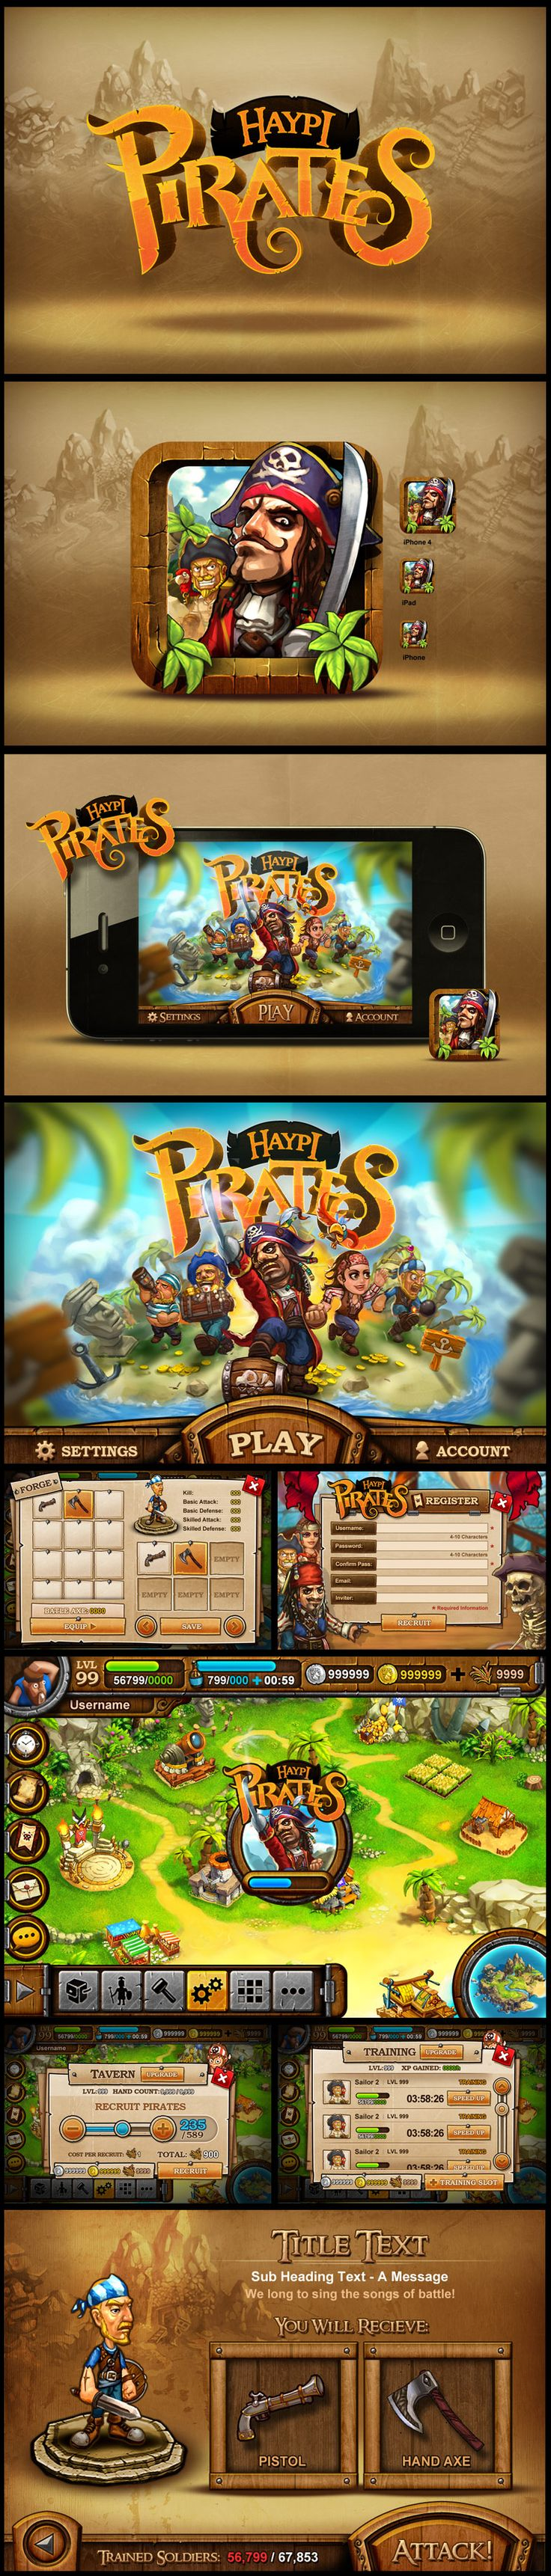 http://www.fullyillustrated.com/ Haypi Pirates (Kingdom of Pirates)